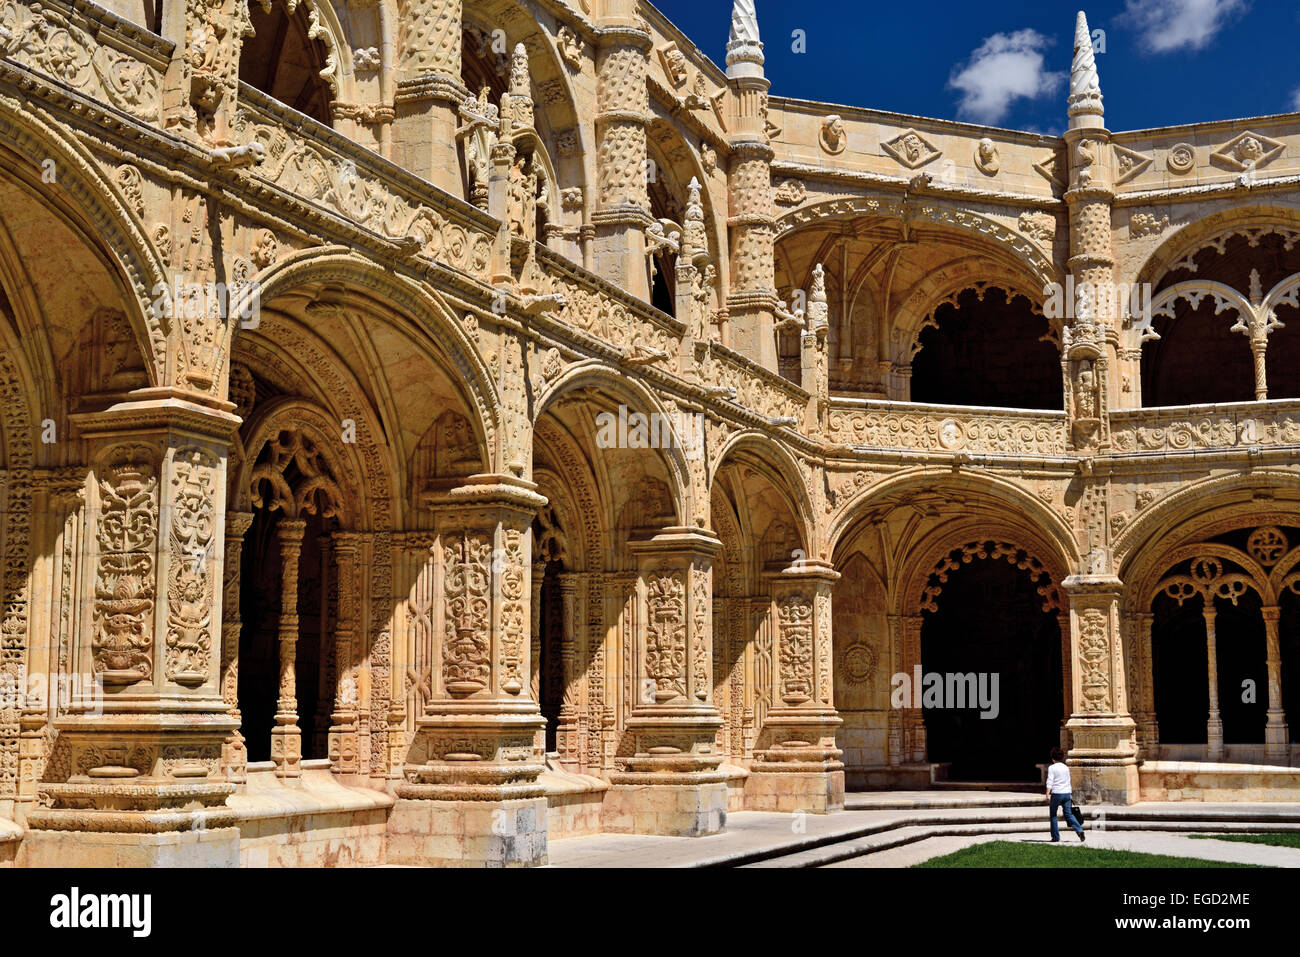 Portugal, Lisbon: Interior view of Patio and Cloister of World Heritage monastery Mosterio dos Jeronimos in Belém - Stock Image